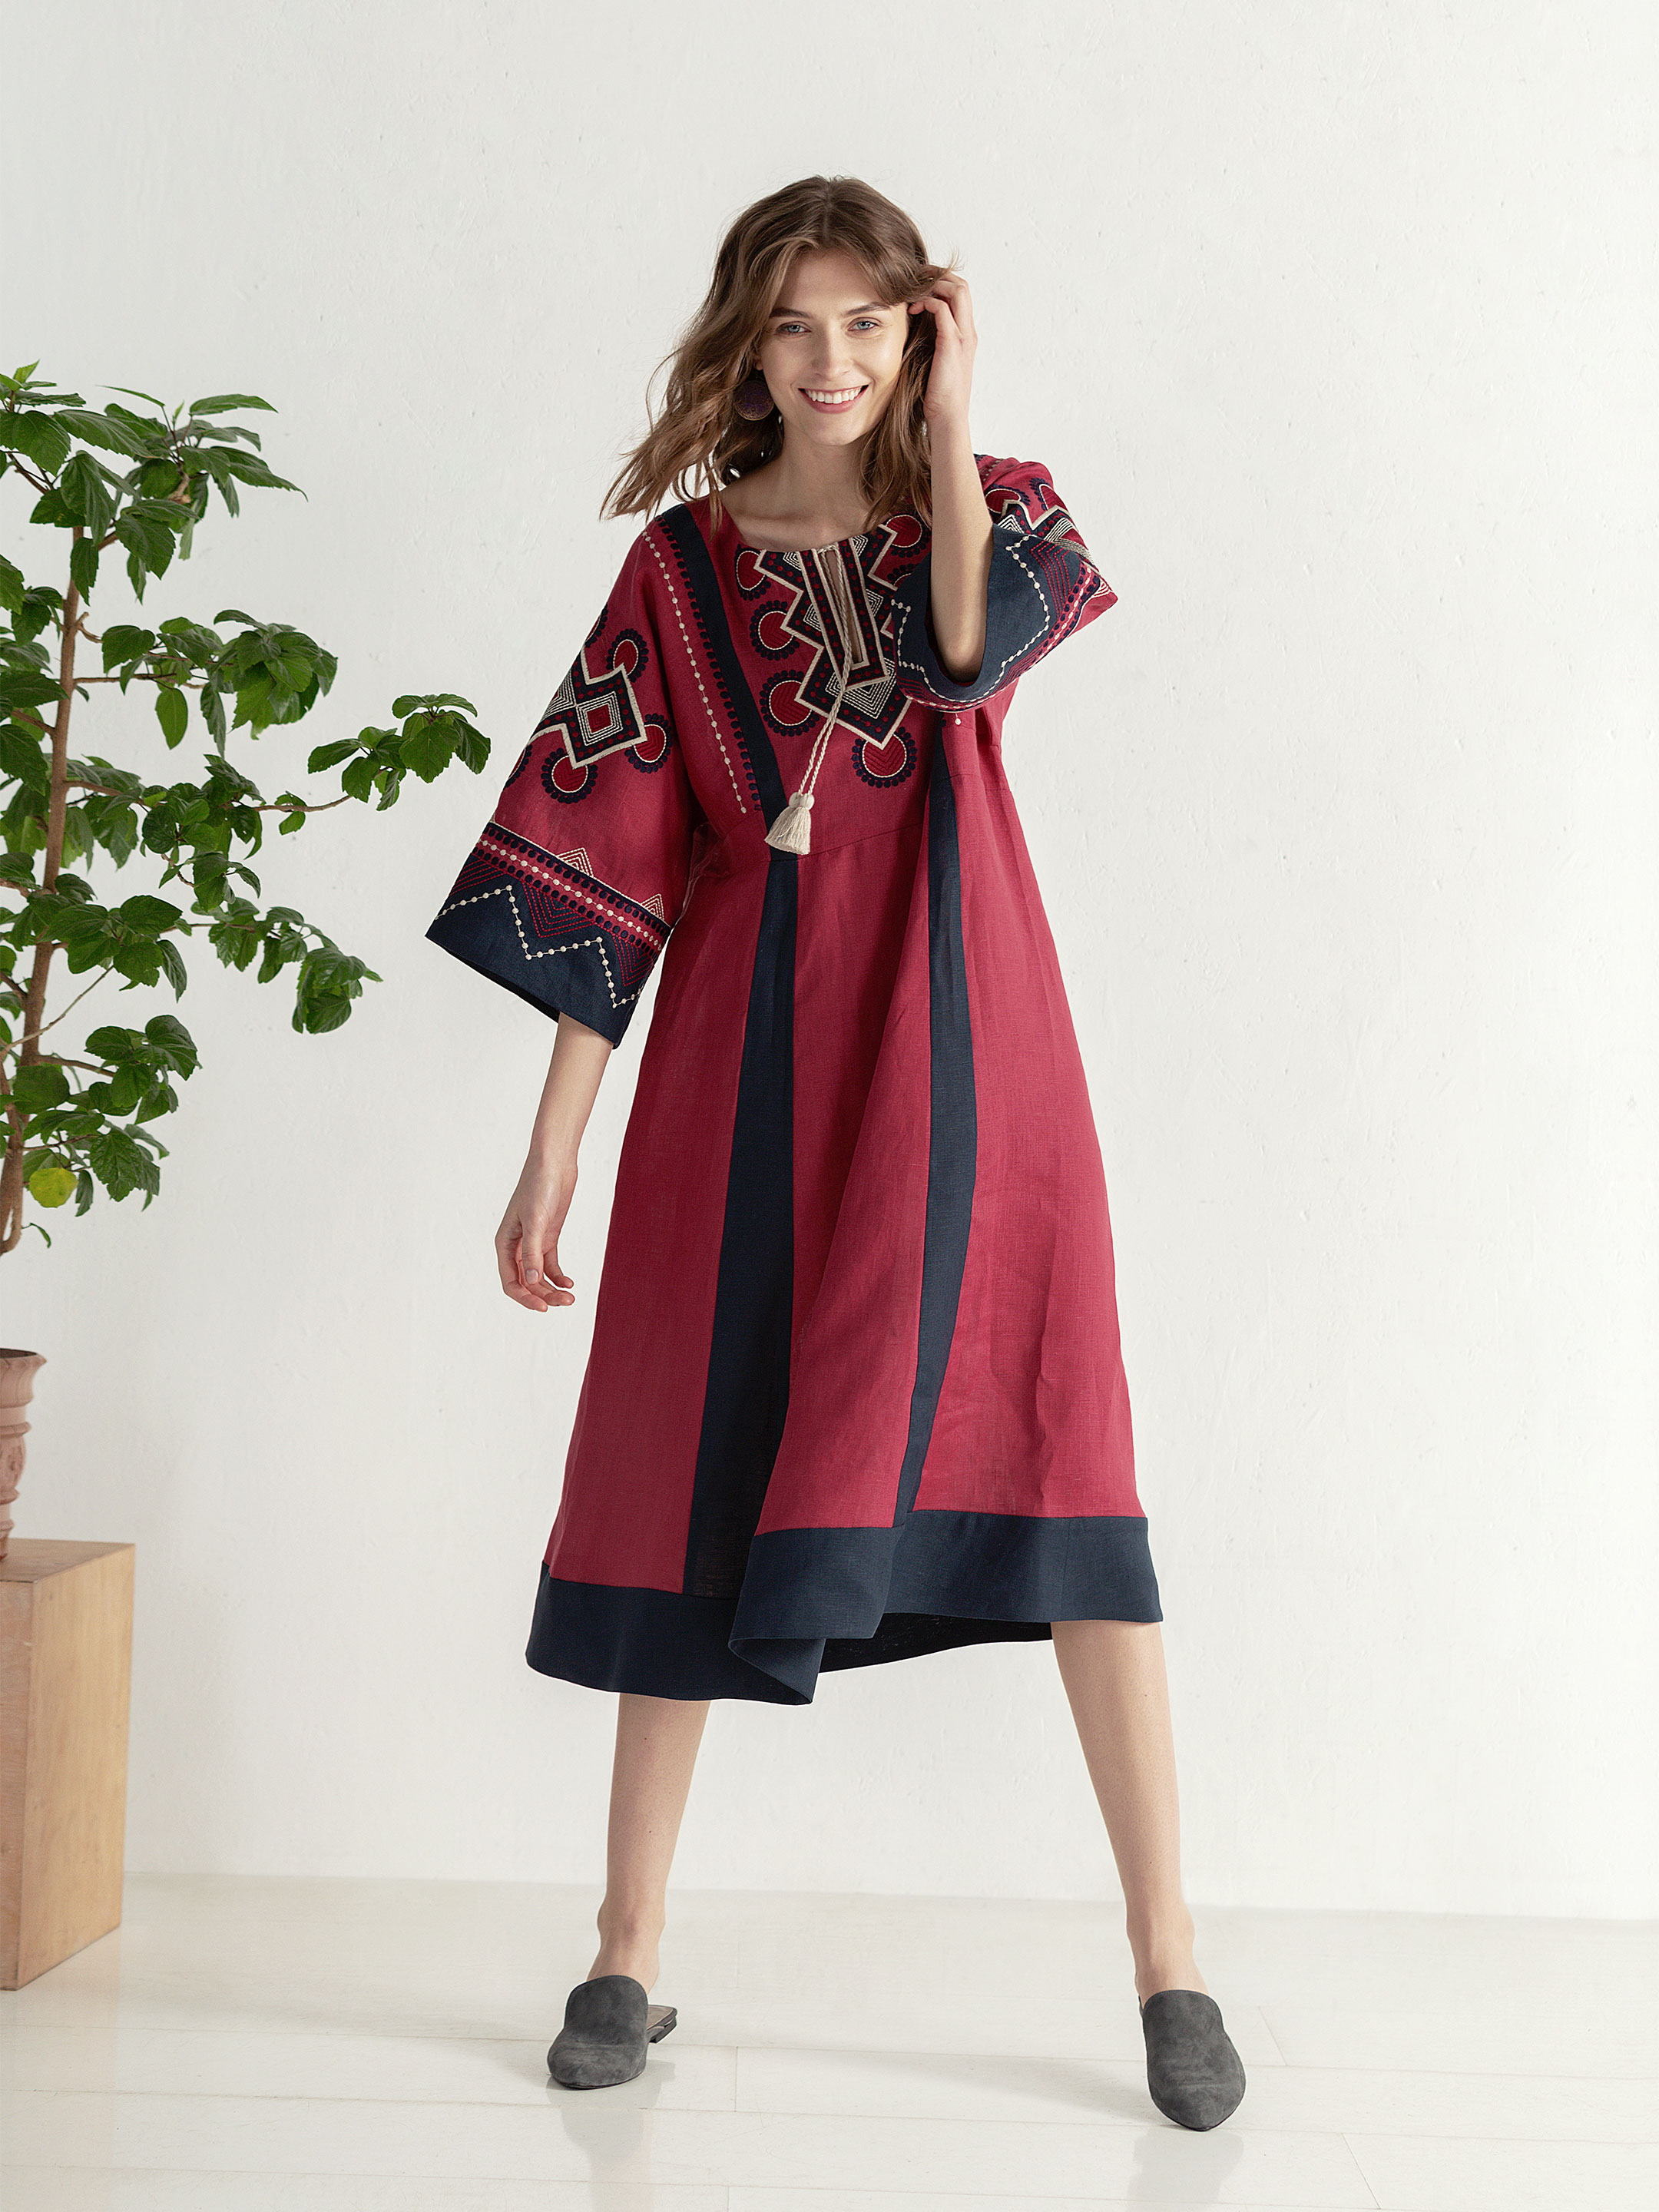 Boho dress of free robe with embroidery Temple2